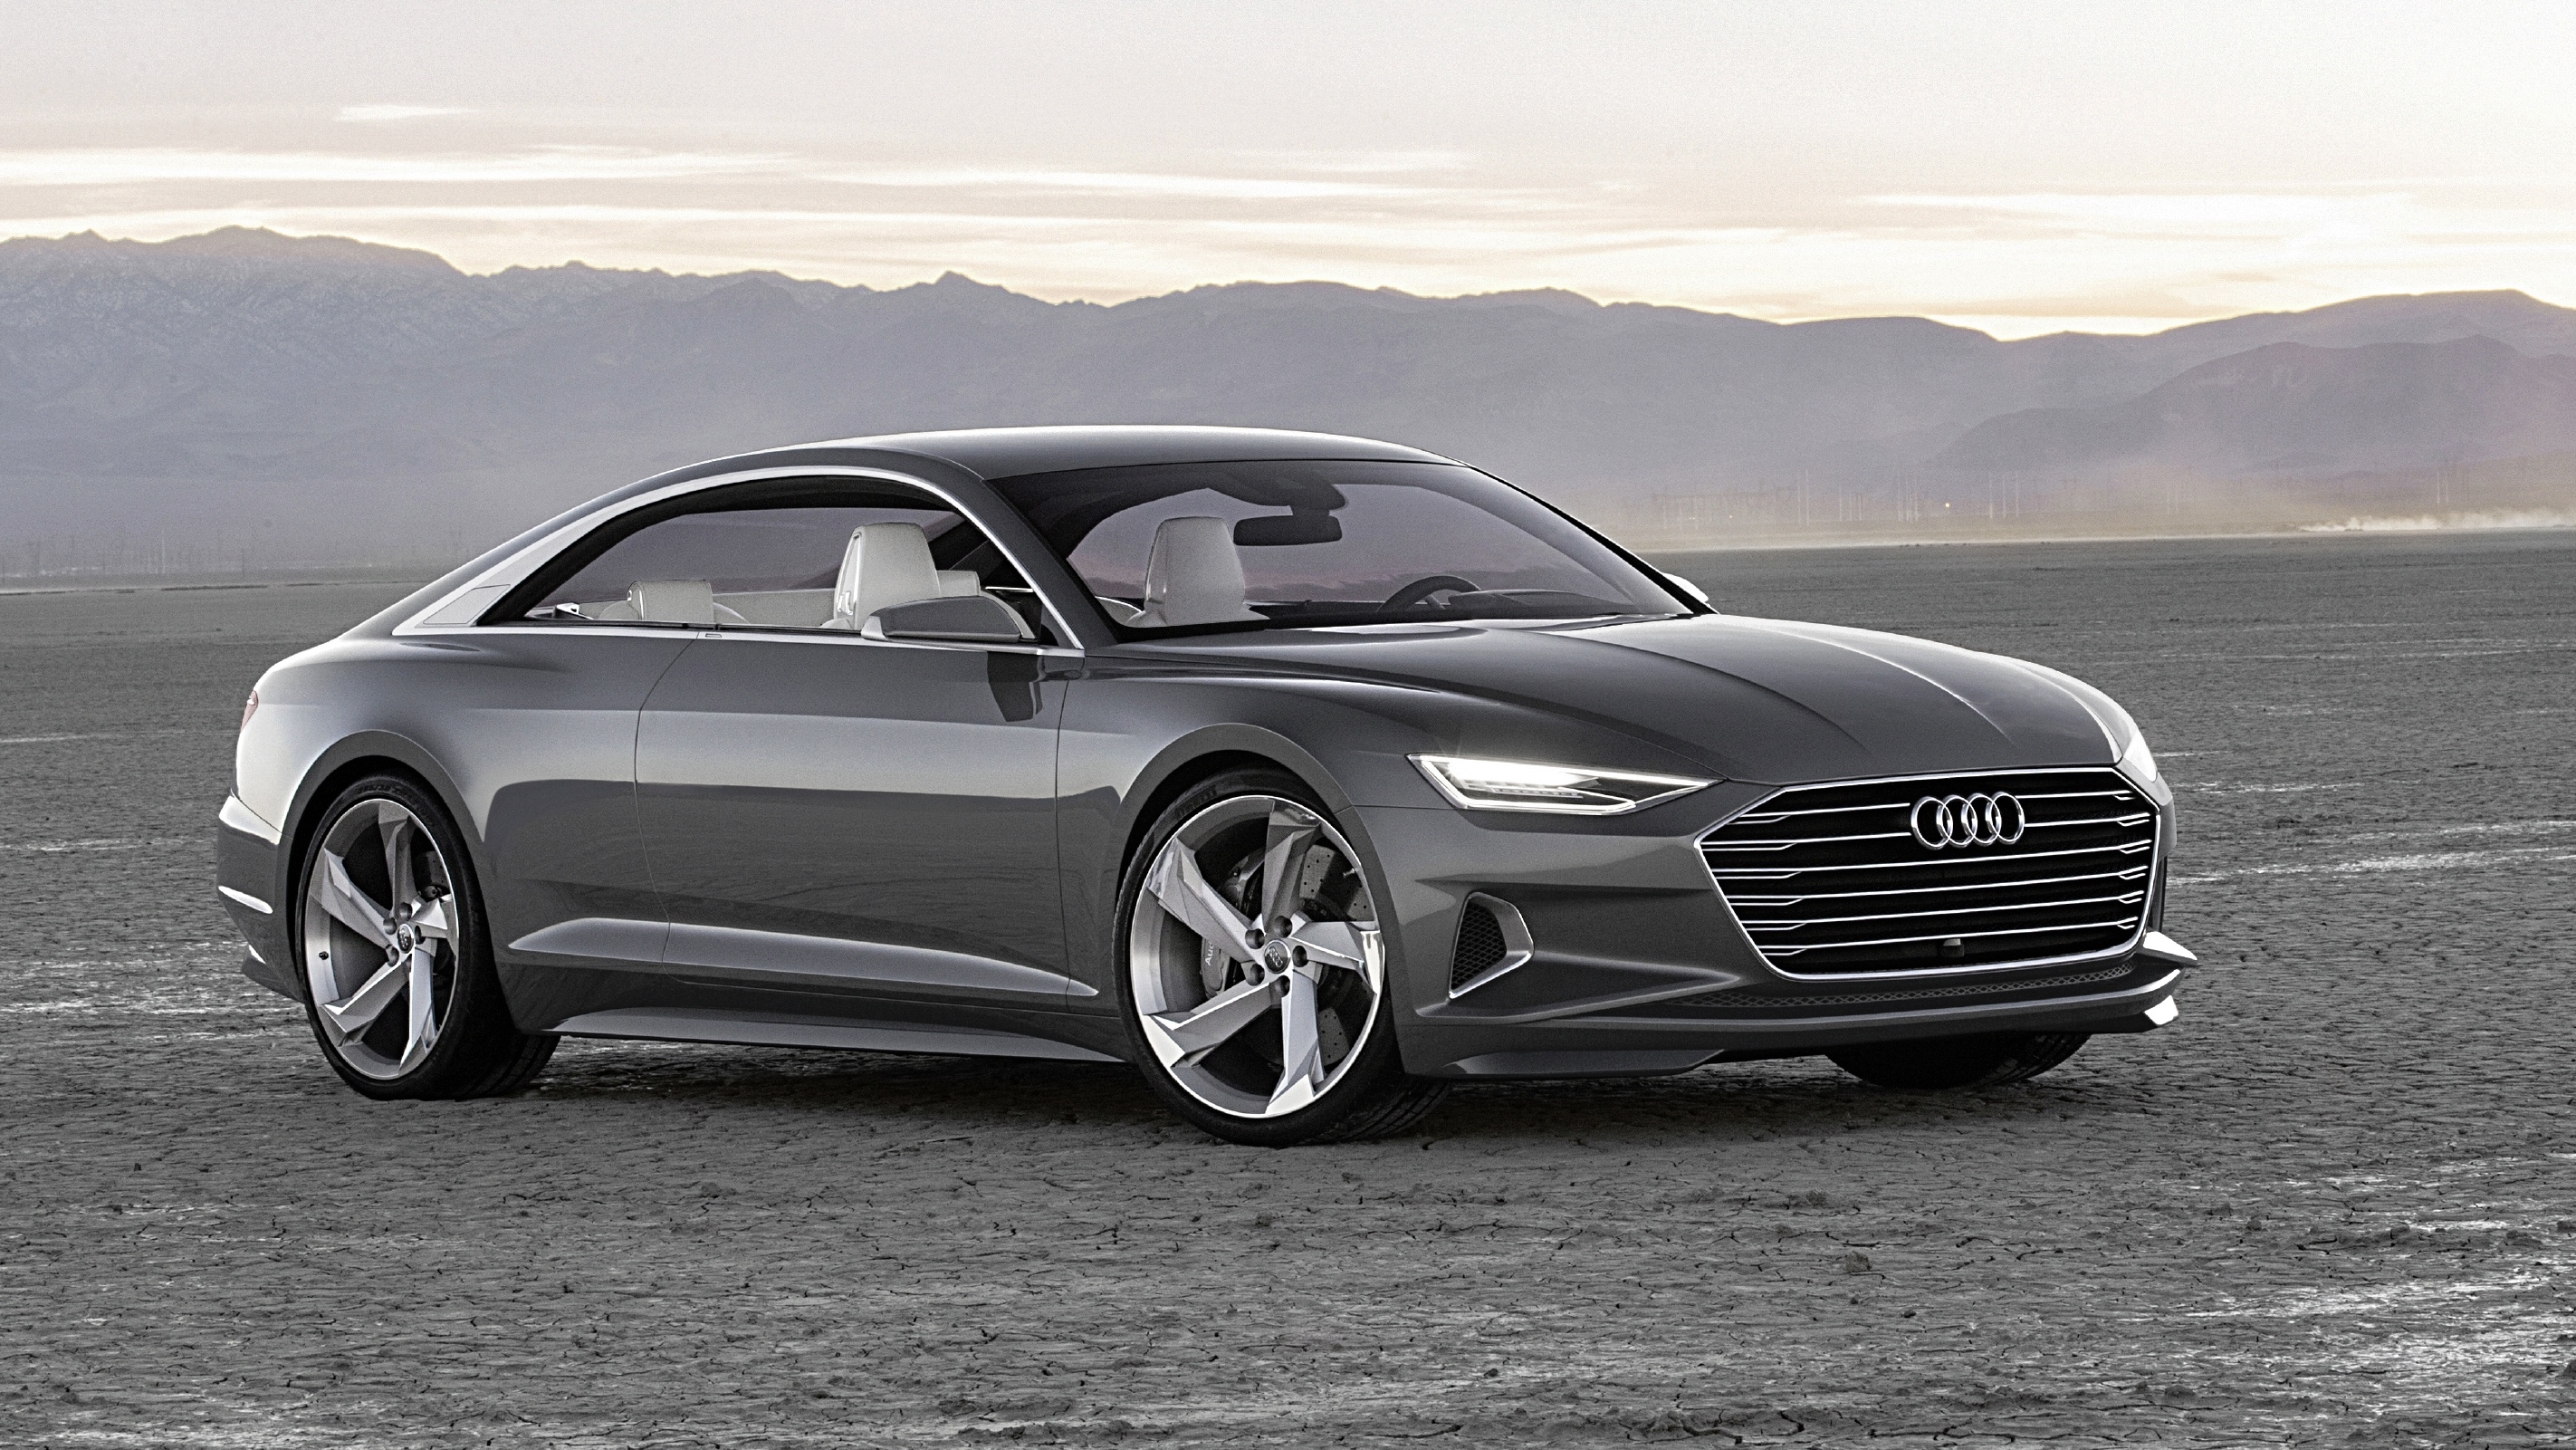 News Audi Keen On Two Door Flagship To Rival Bmw 8 Series